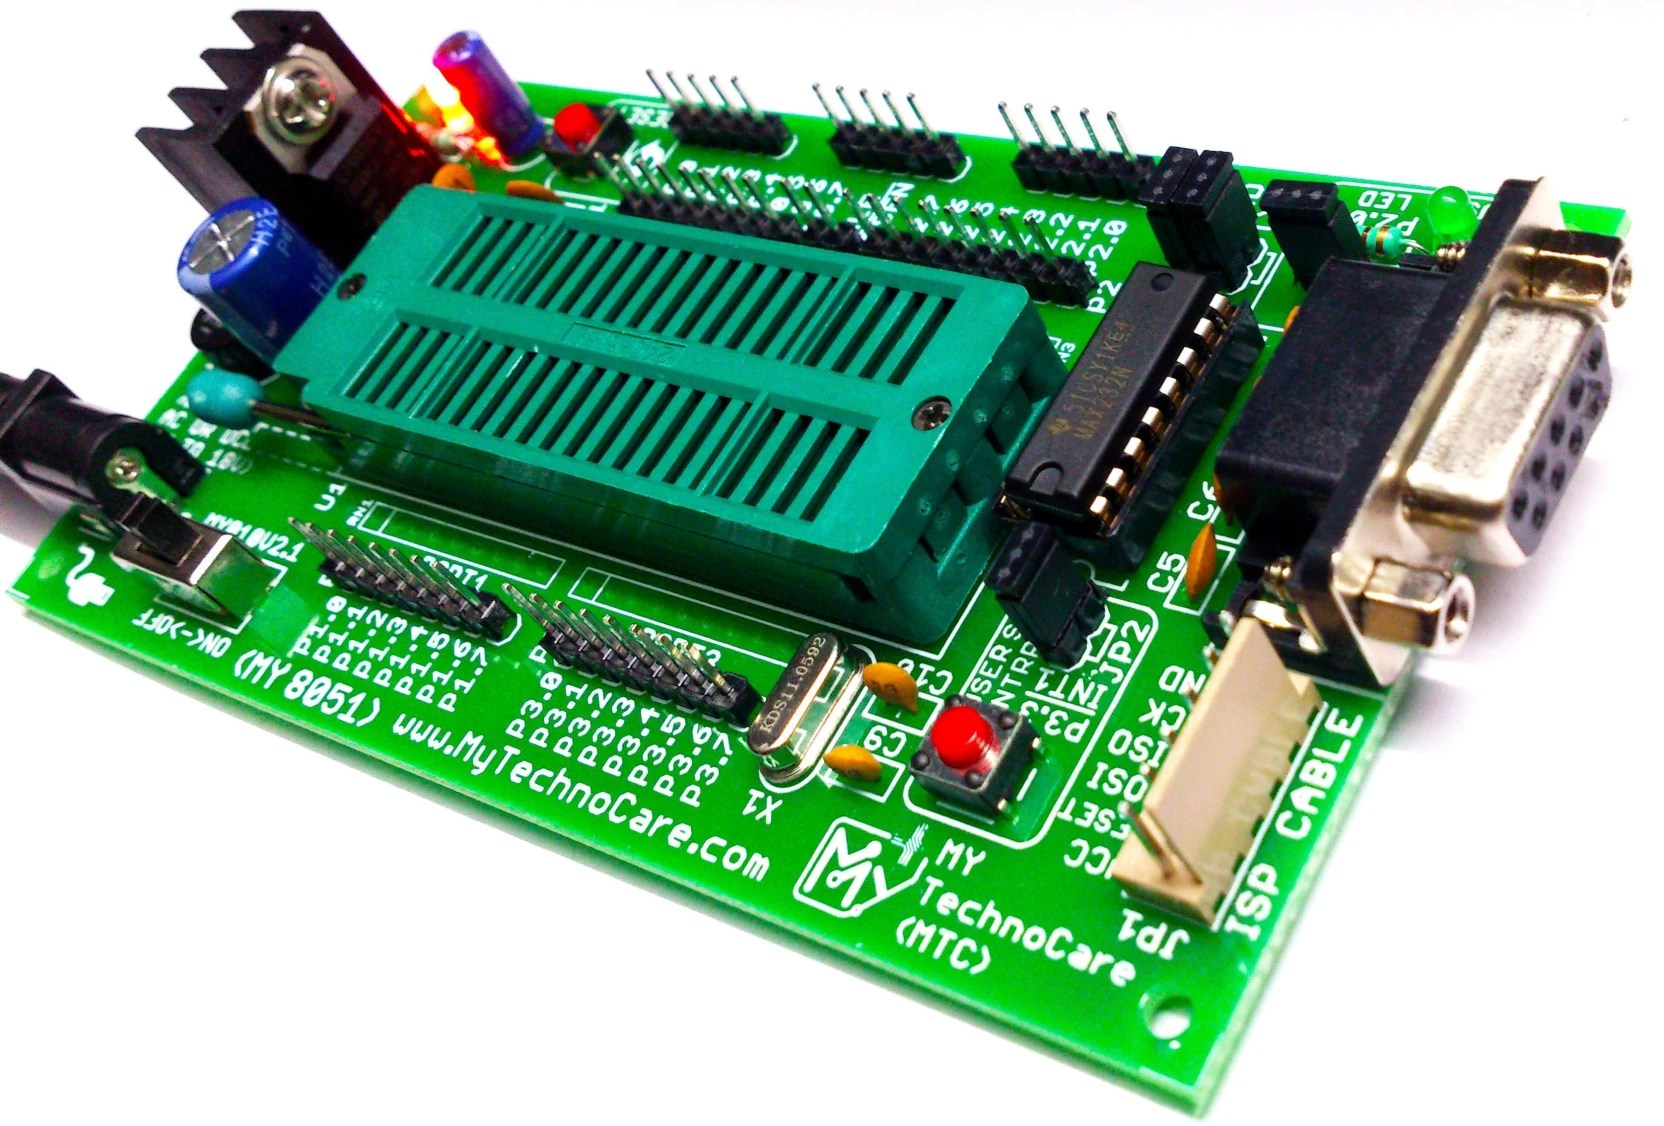 small resolution of my technocare atmel 8051 development board zif socket max232 without at89s52 microcontroller ic support 89s51 xx 89cxx p89v51rd2 architecture 40 pin chip